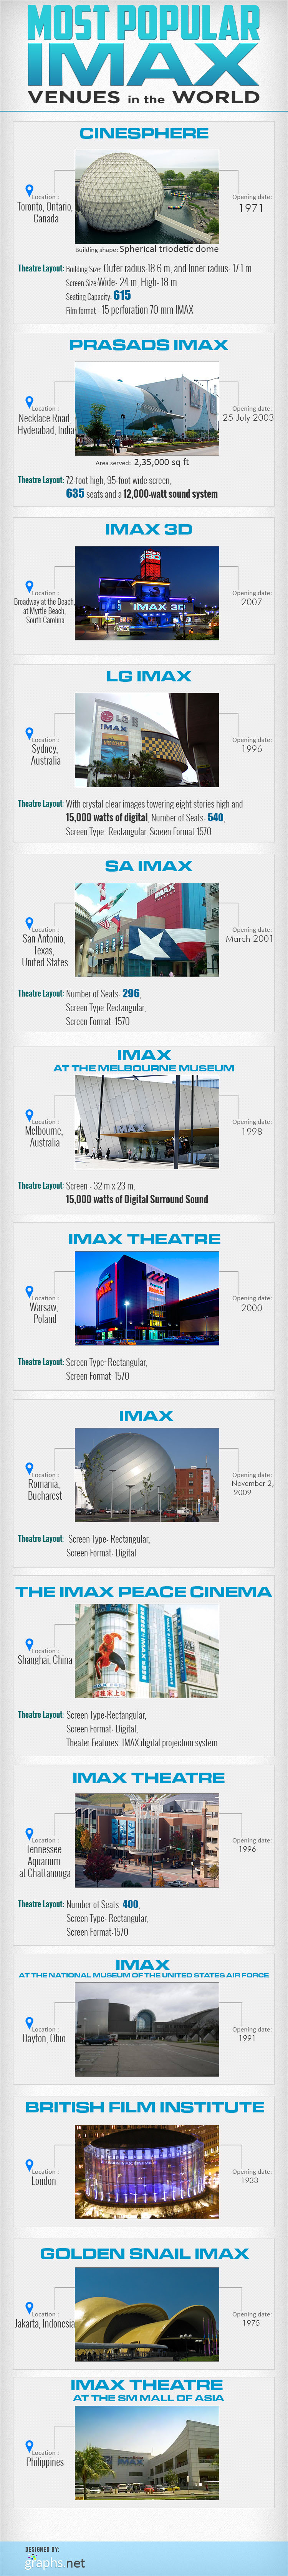 Most Popular IMAX Venues in the World